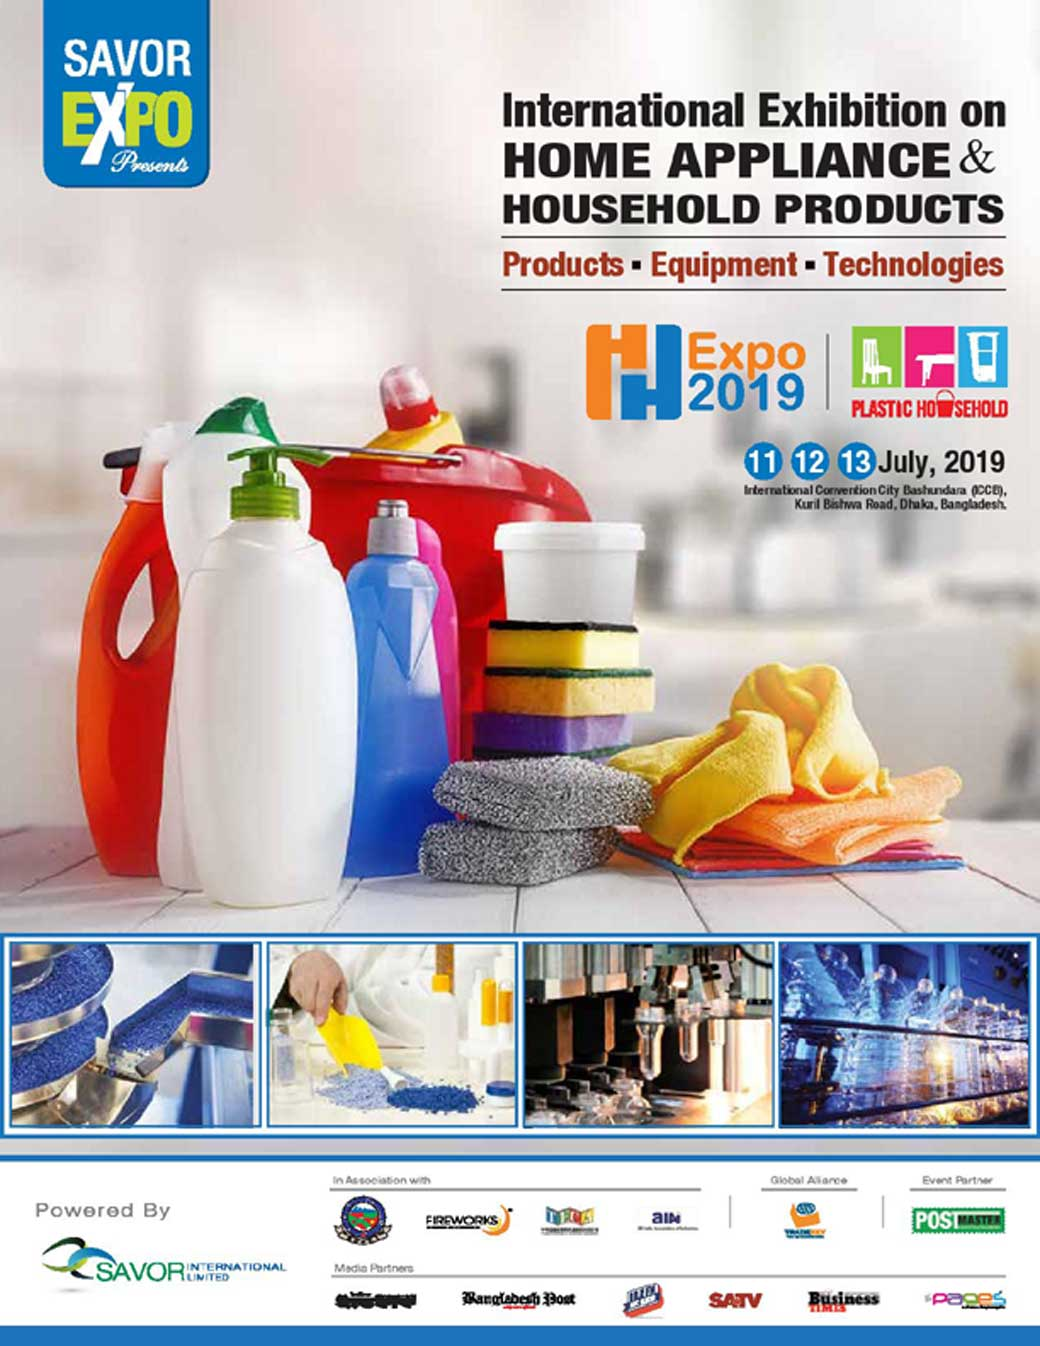 Plastic Household Expo 2019 - Exhibition in Bangladesh